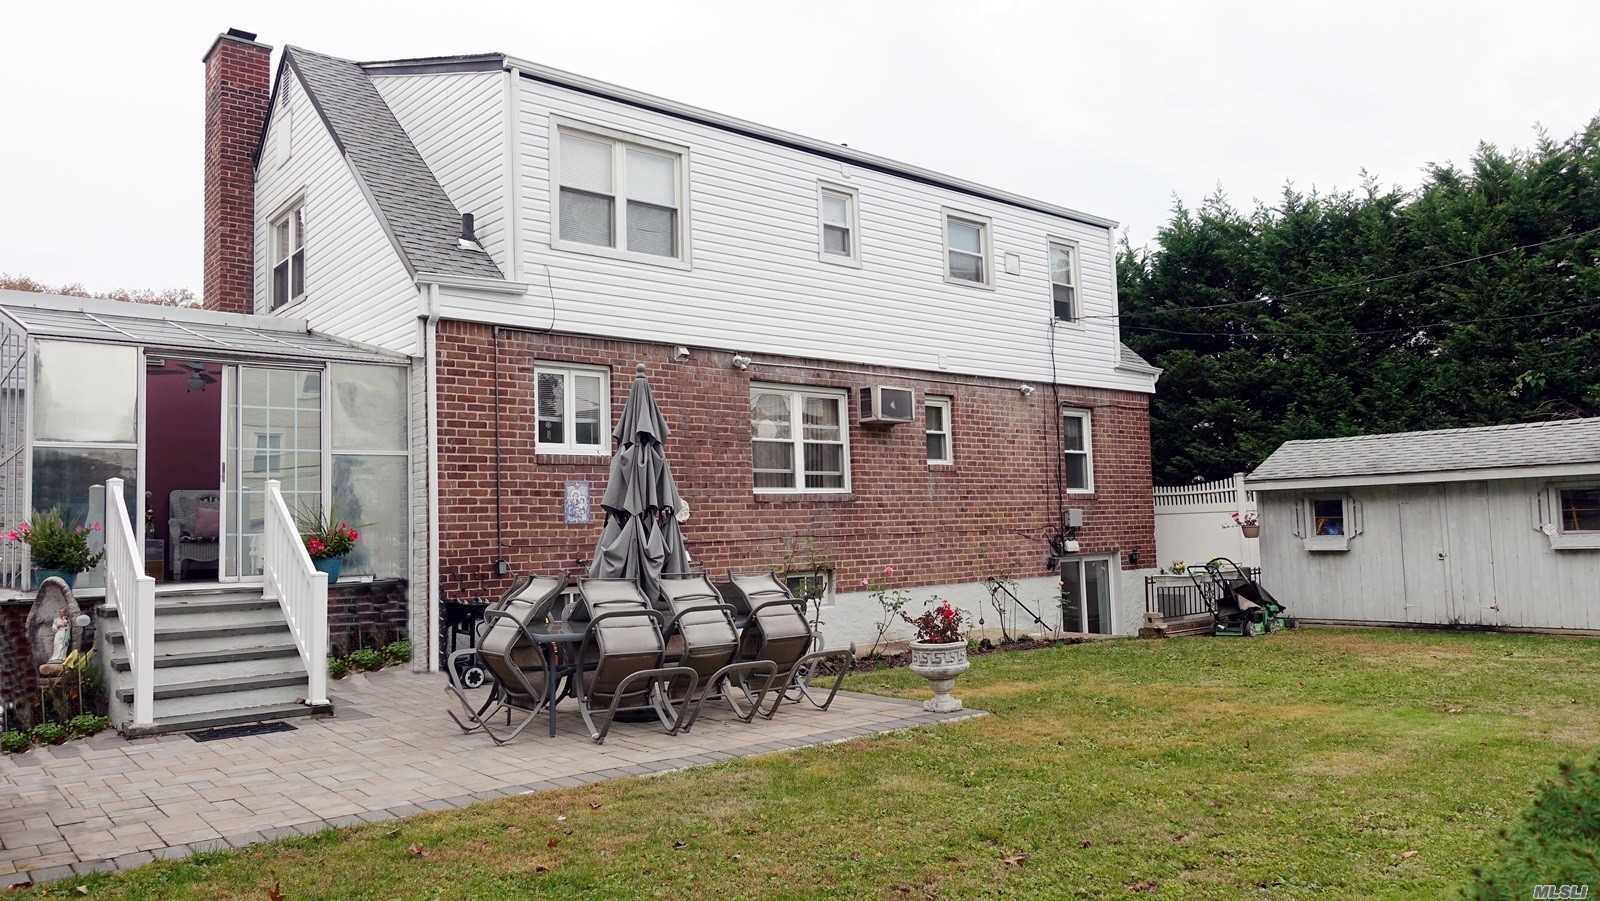 Property for sale at 209-48 34 Avenue, Bayside NY 11361, Bayside,  New York 11361